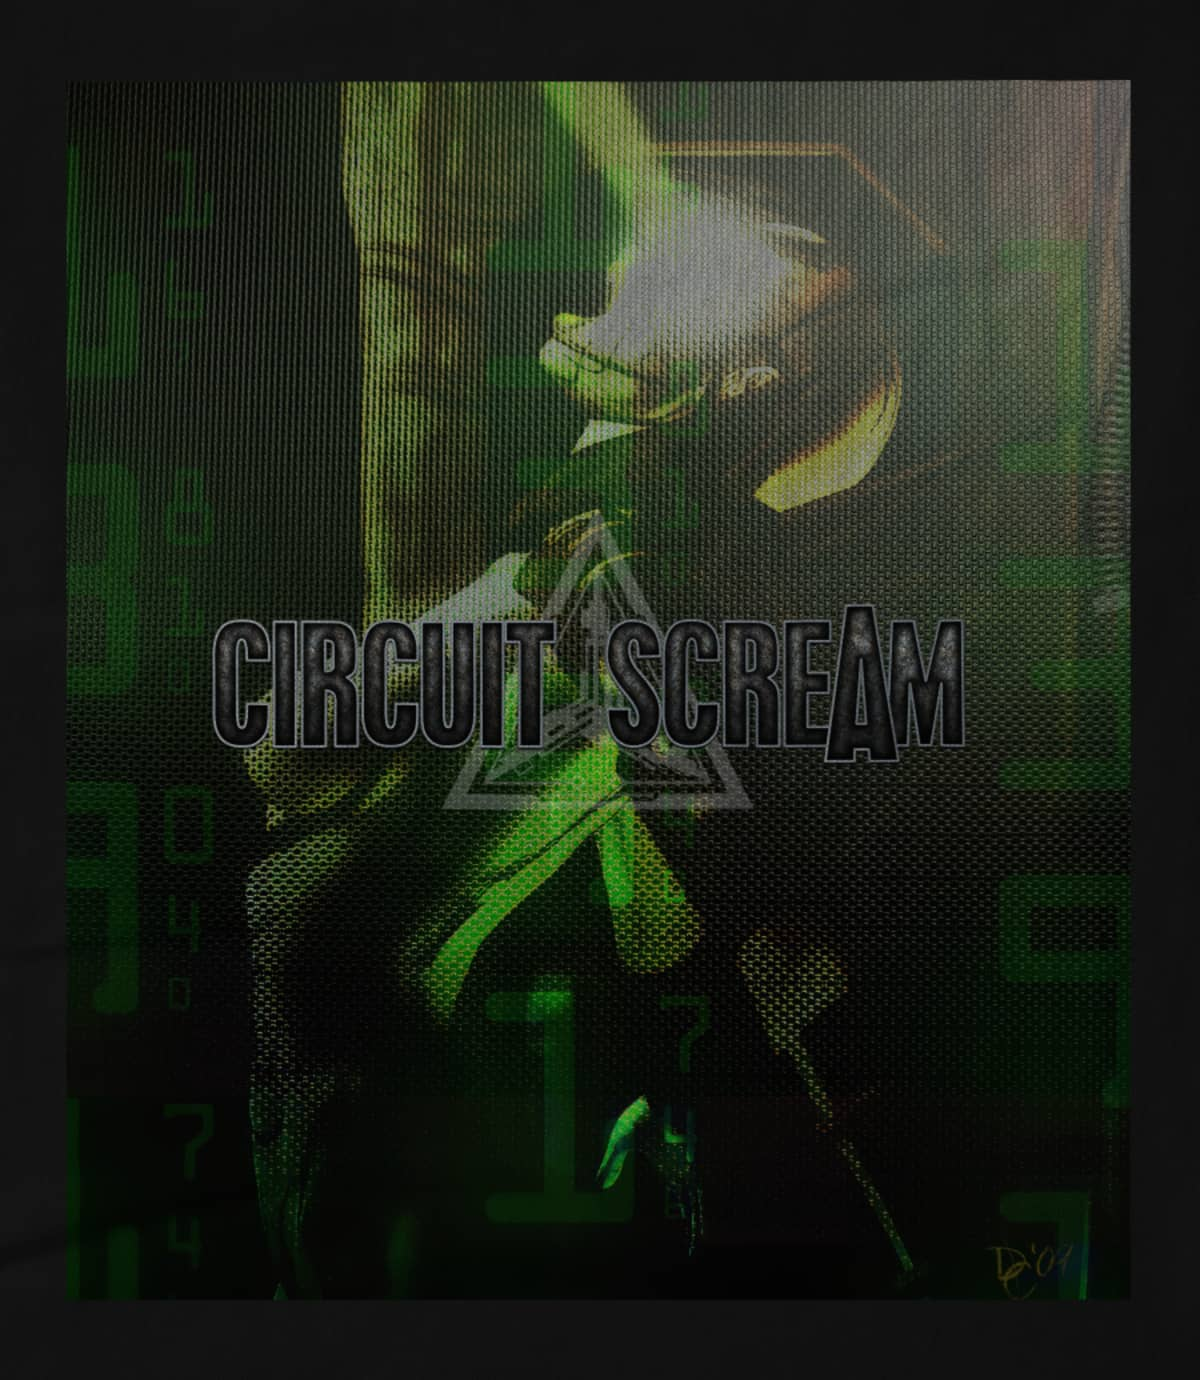 Circuit Scream